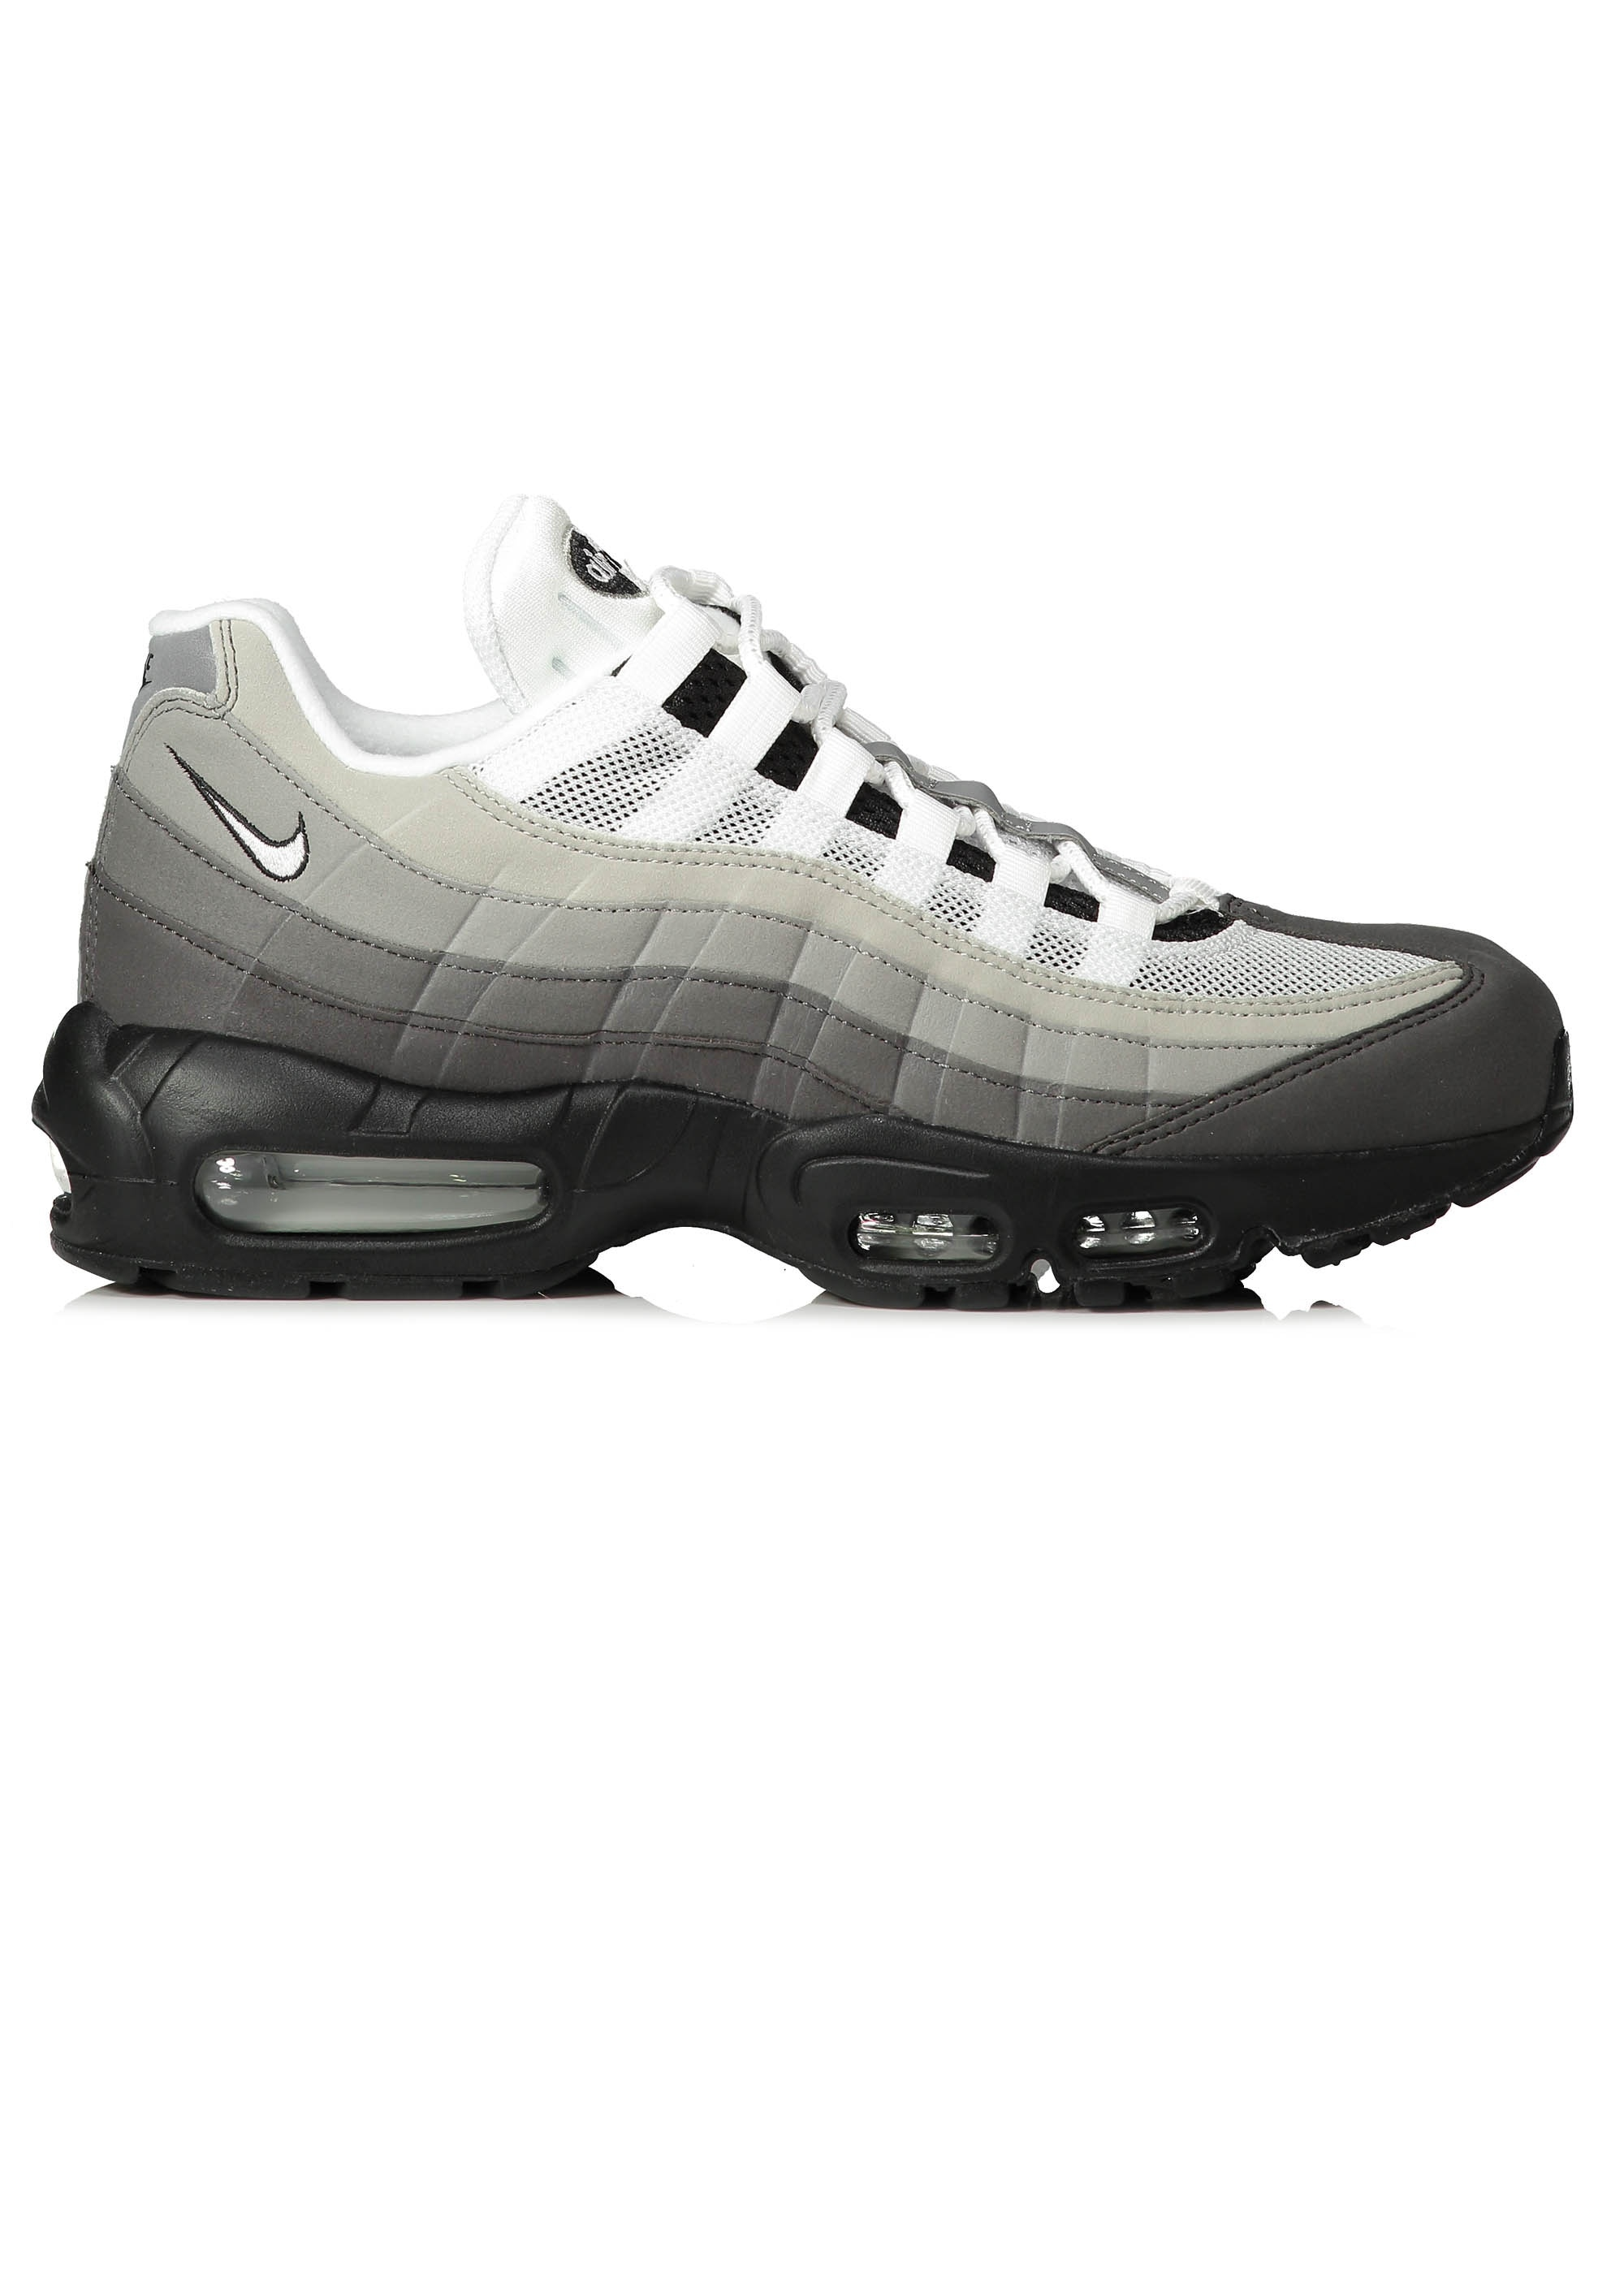 premium selection f81b4 3c748 Nike Footwear Air Max 95 OG - Black / White